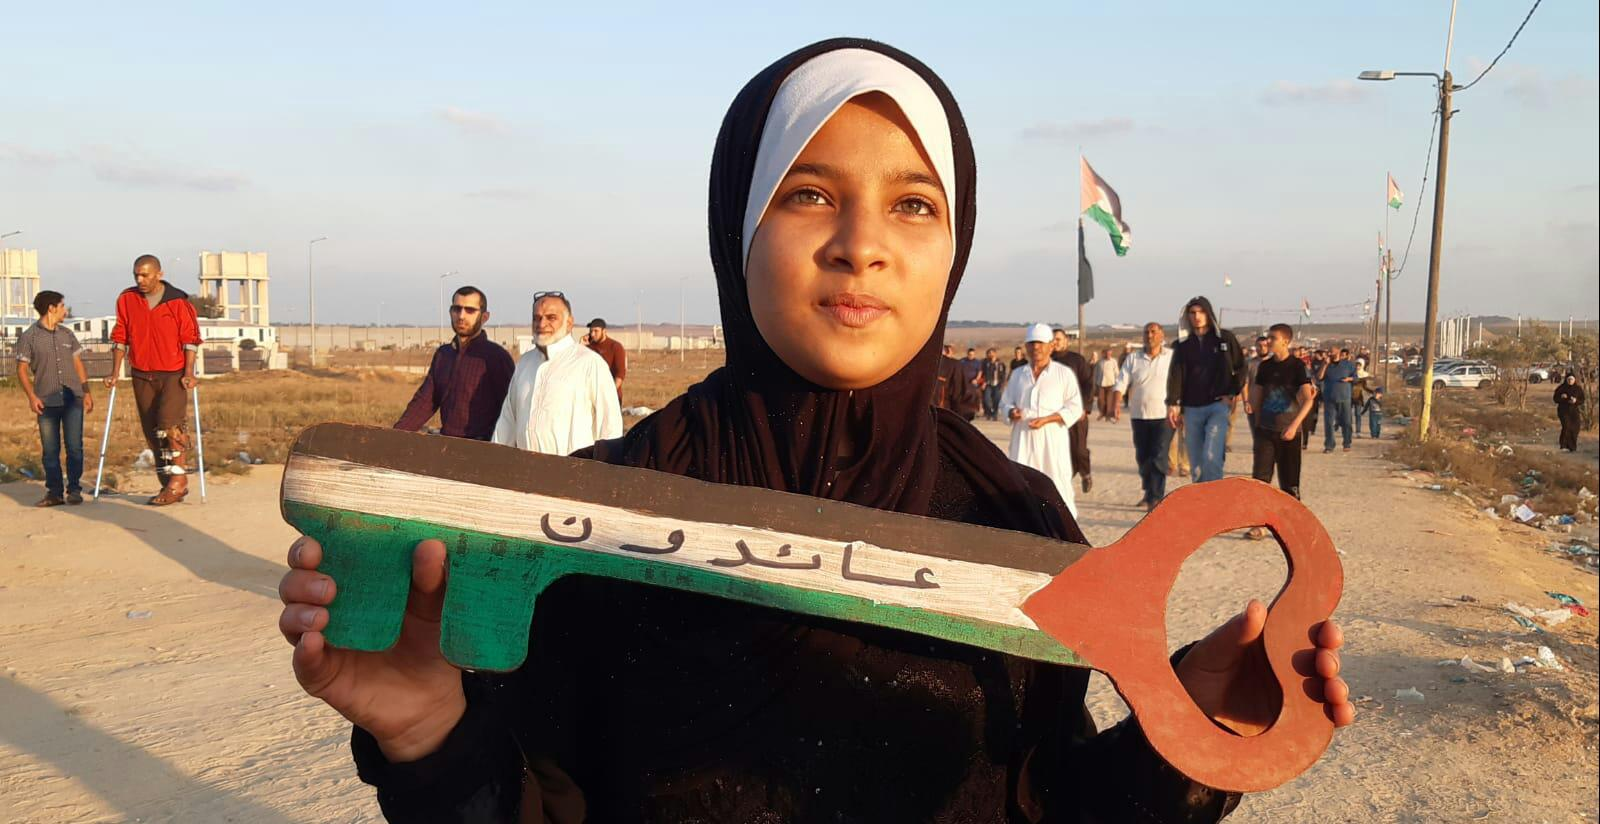 Mosques, churches, protests: Gaza on the Balfour Declaration's 102nd anniversary